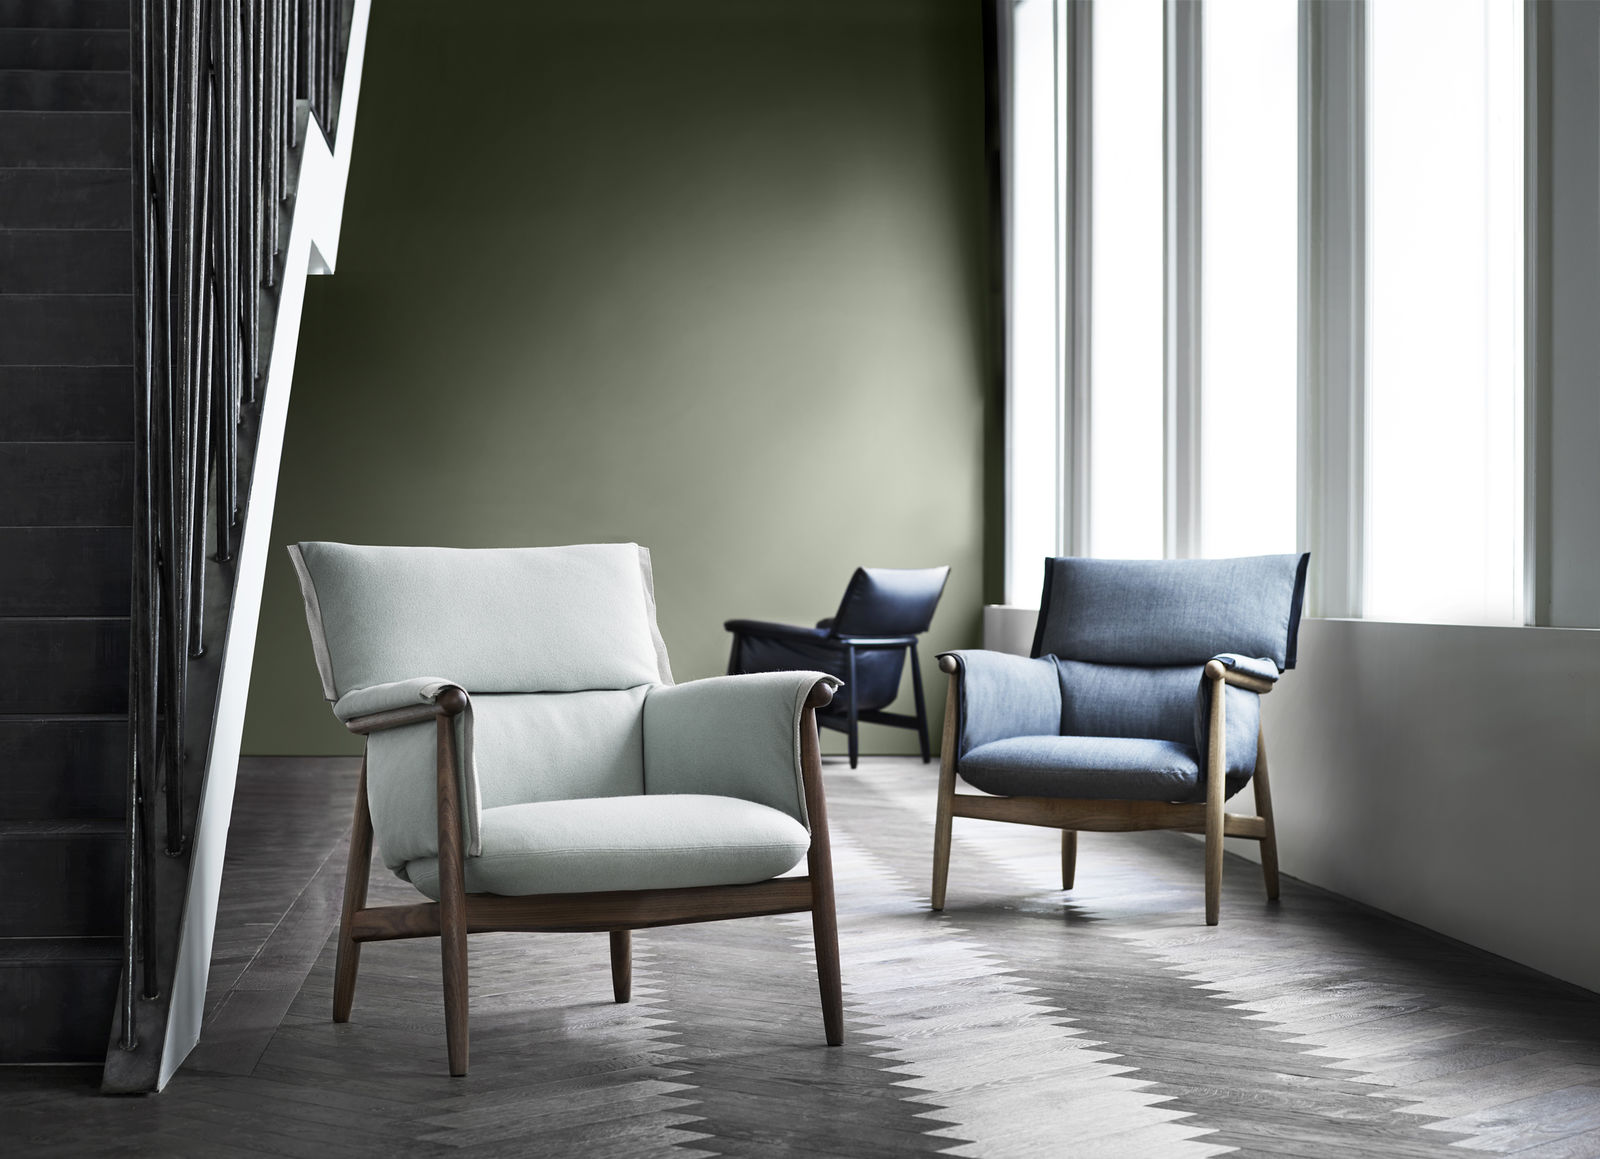 Embrace Lounge chair from Carl Hansen